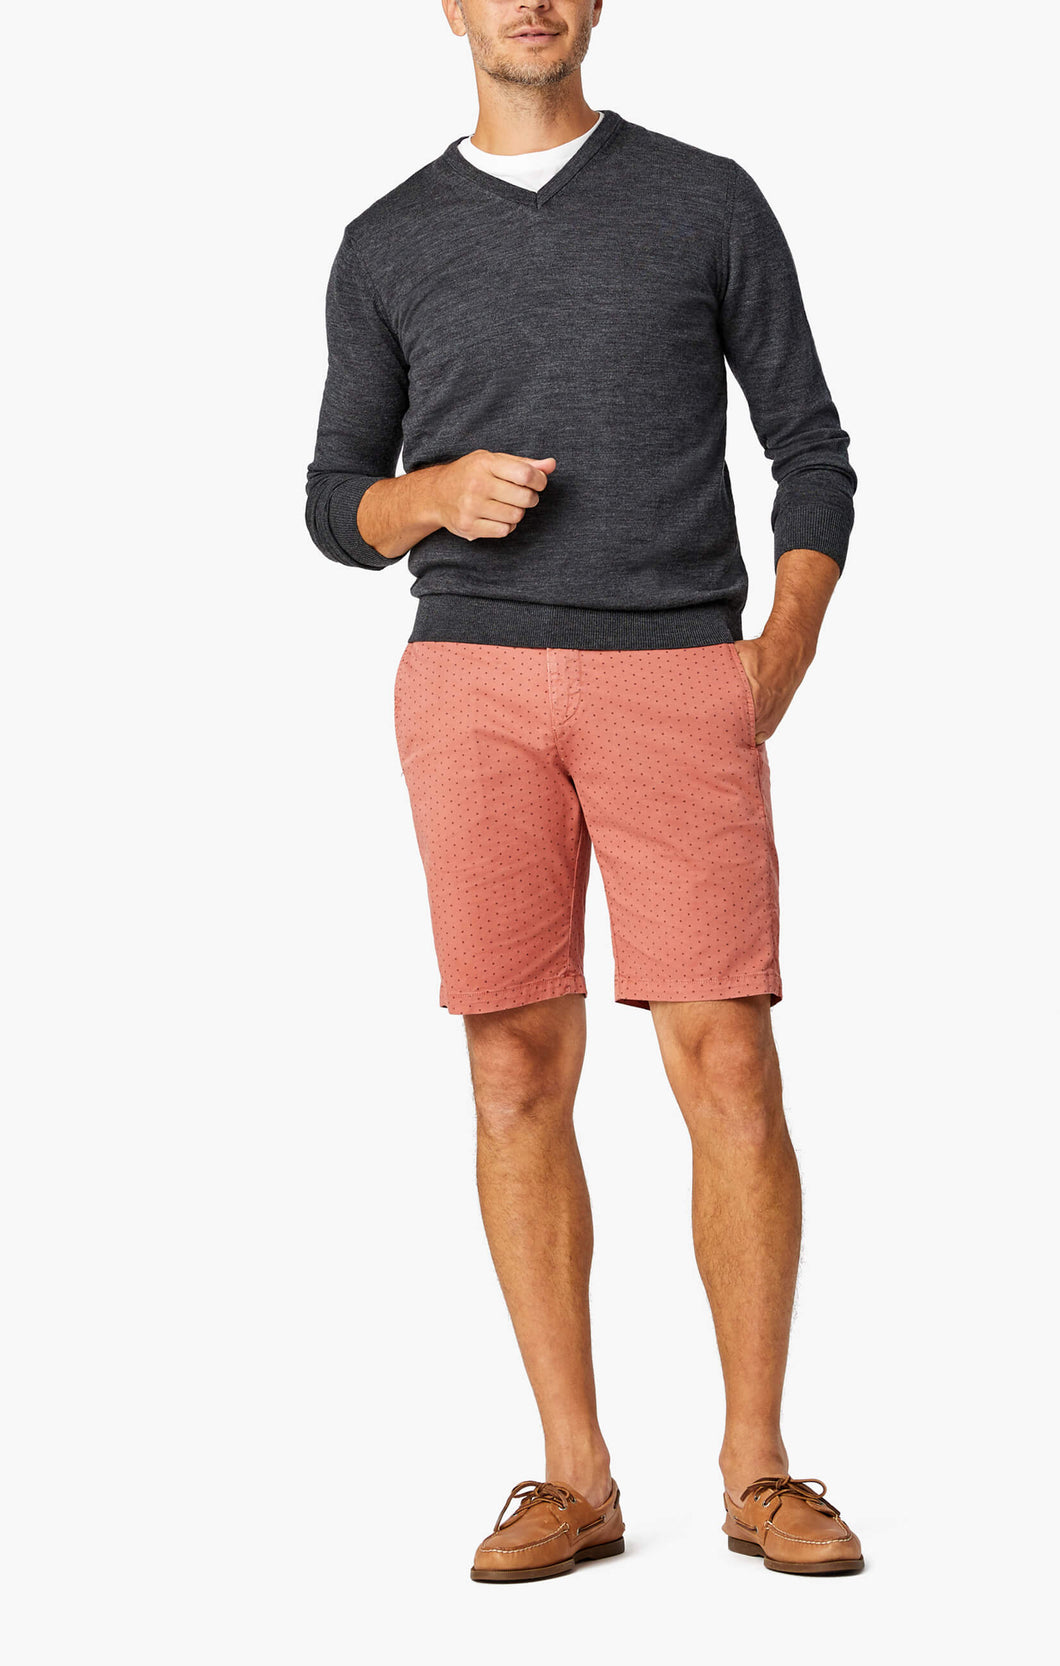 man is wearing cotton shorts in brick colour